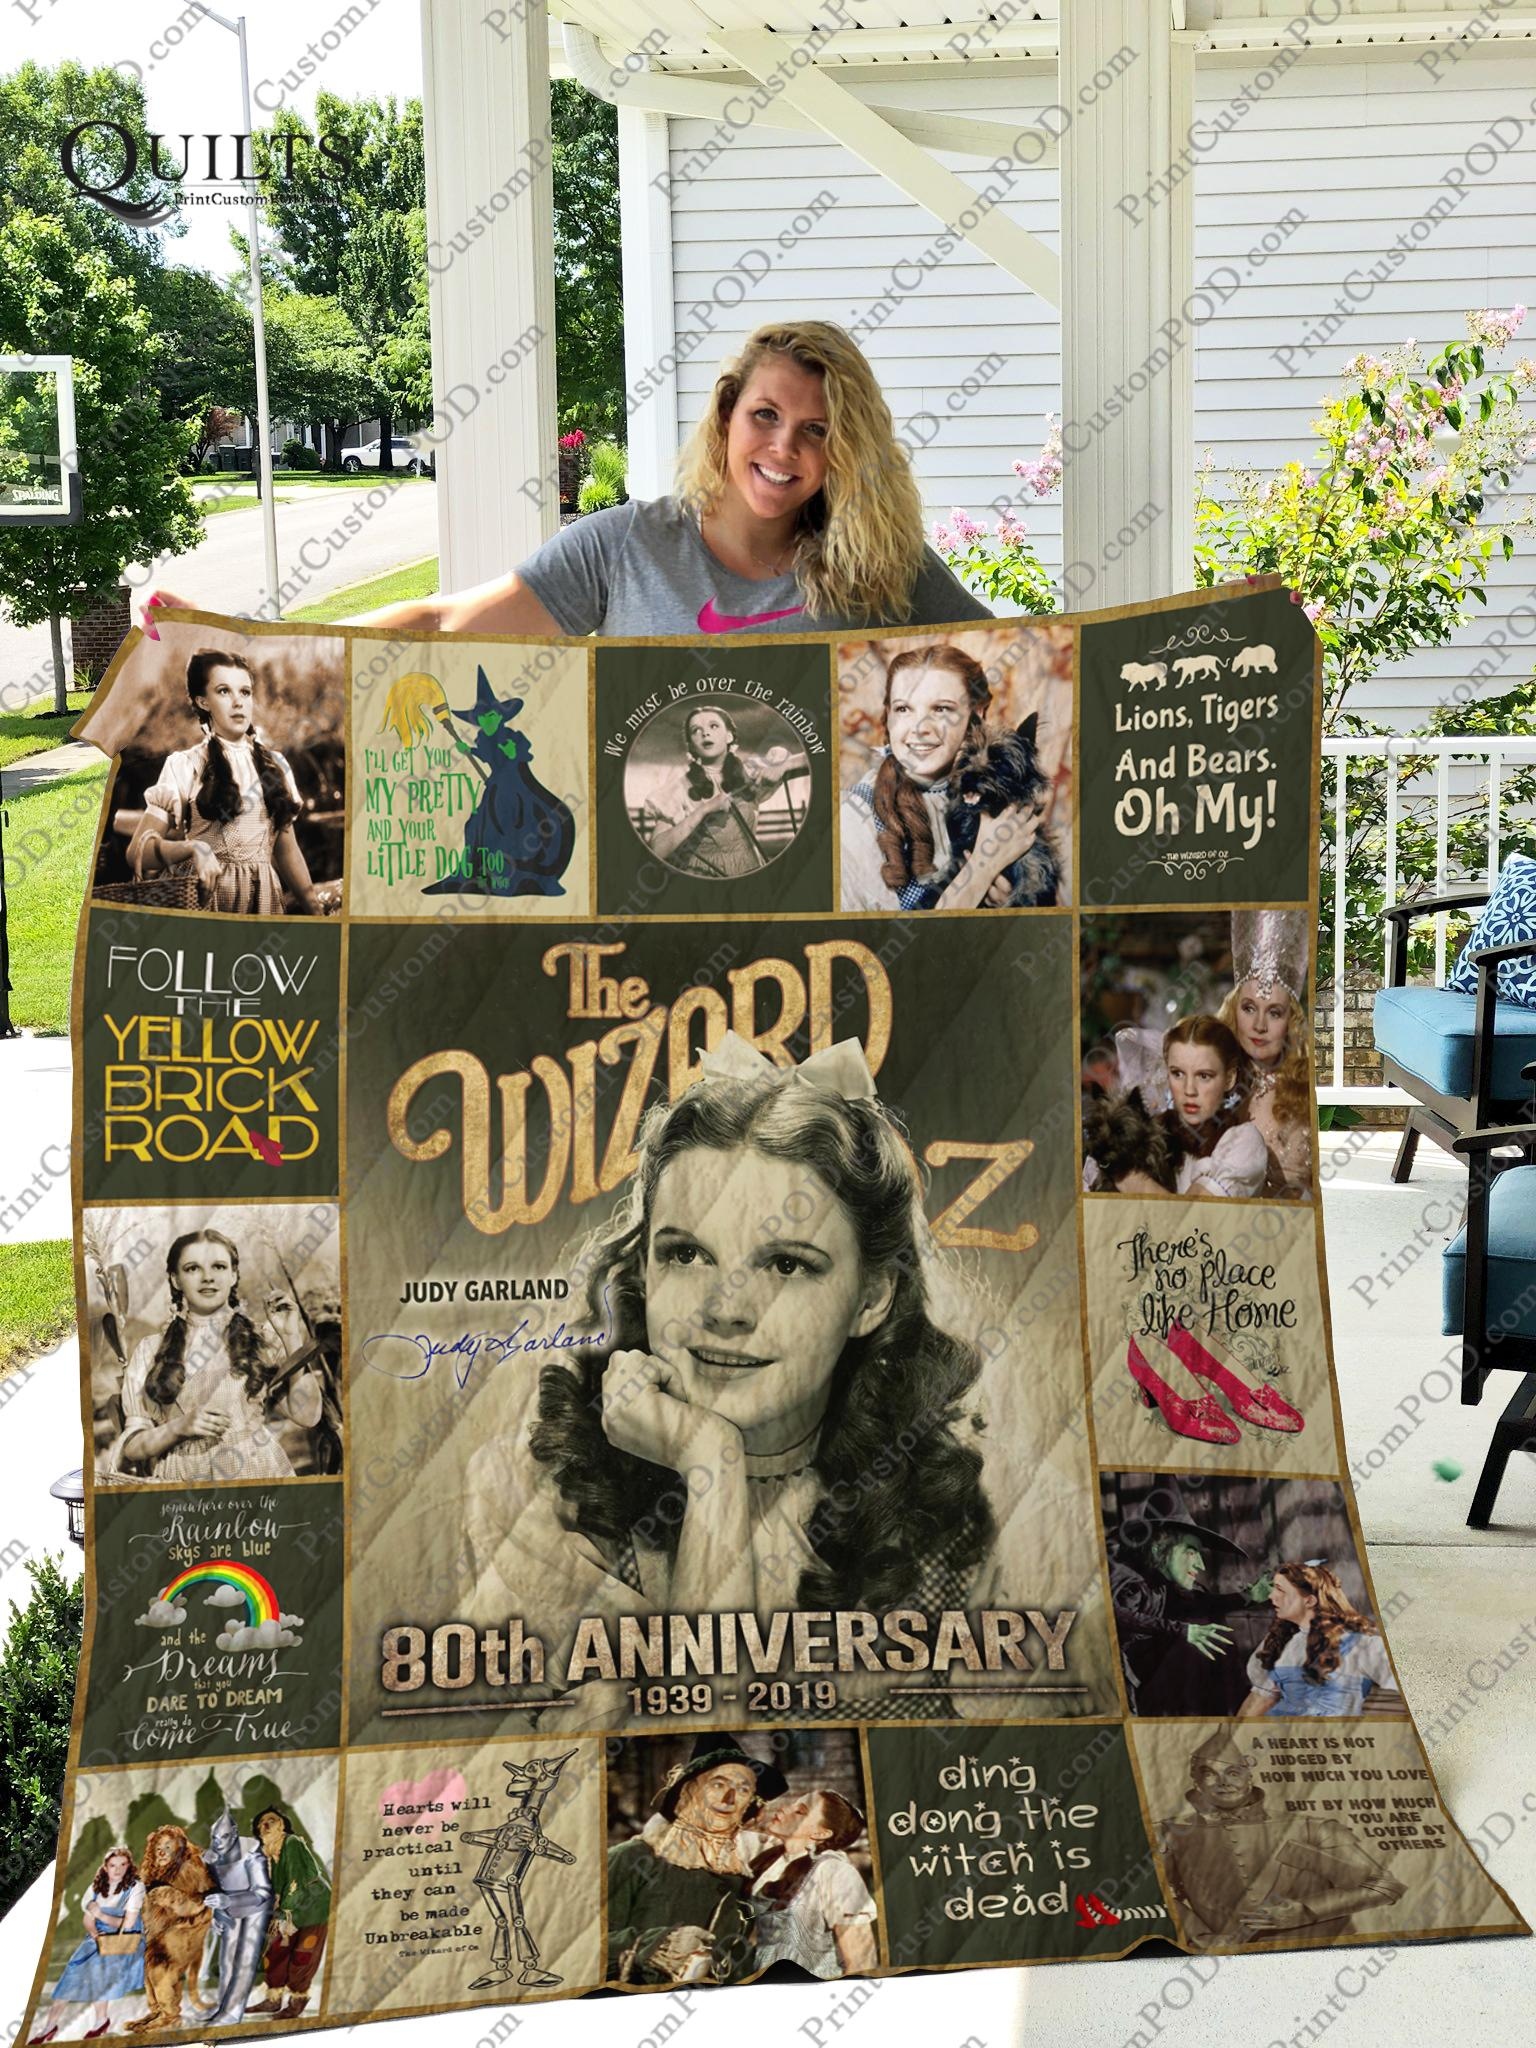 The wizard of oz judy garland 80th anniversary quilt - throw